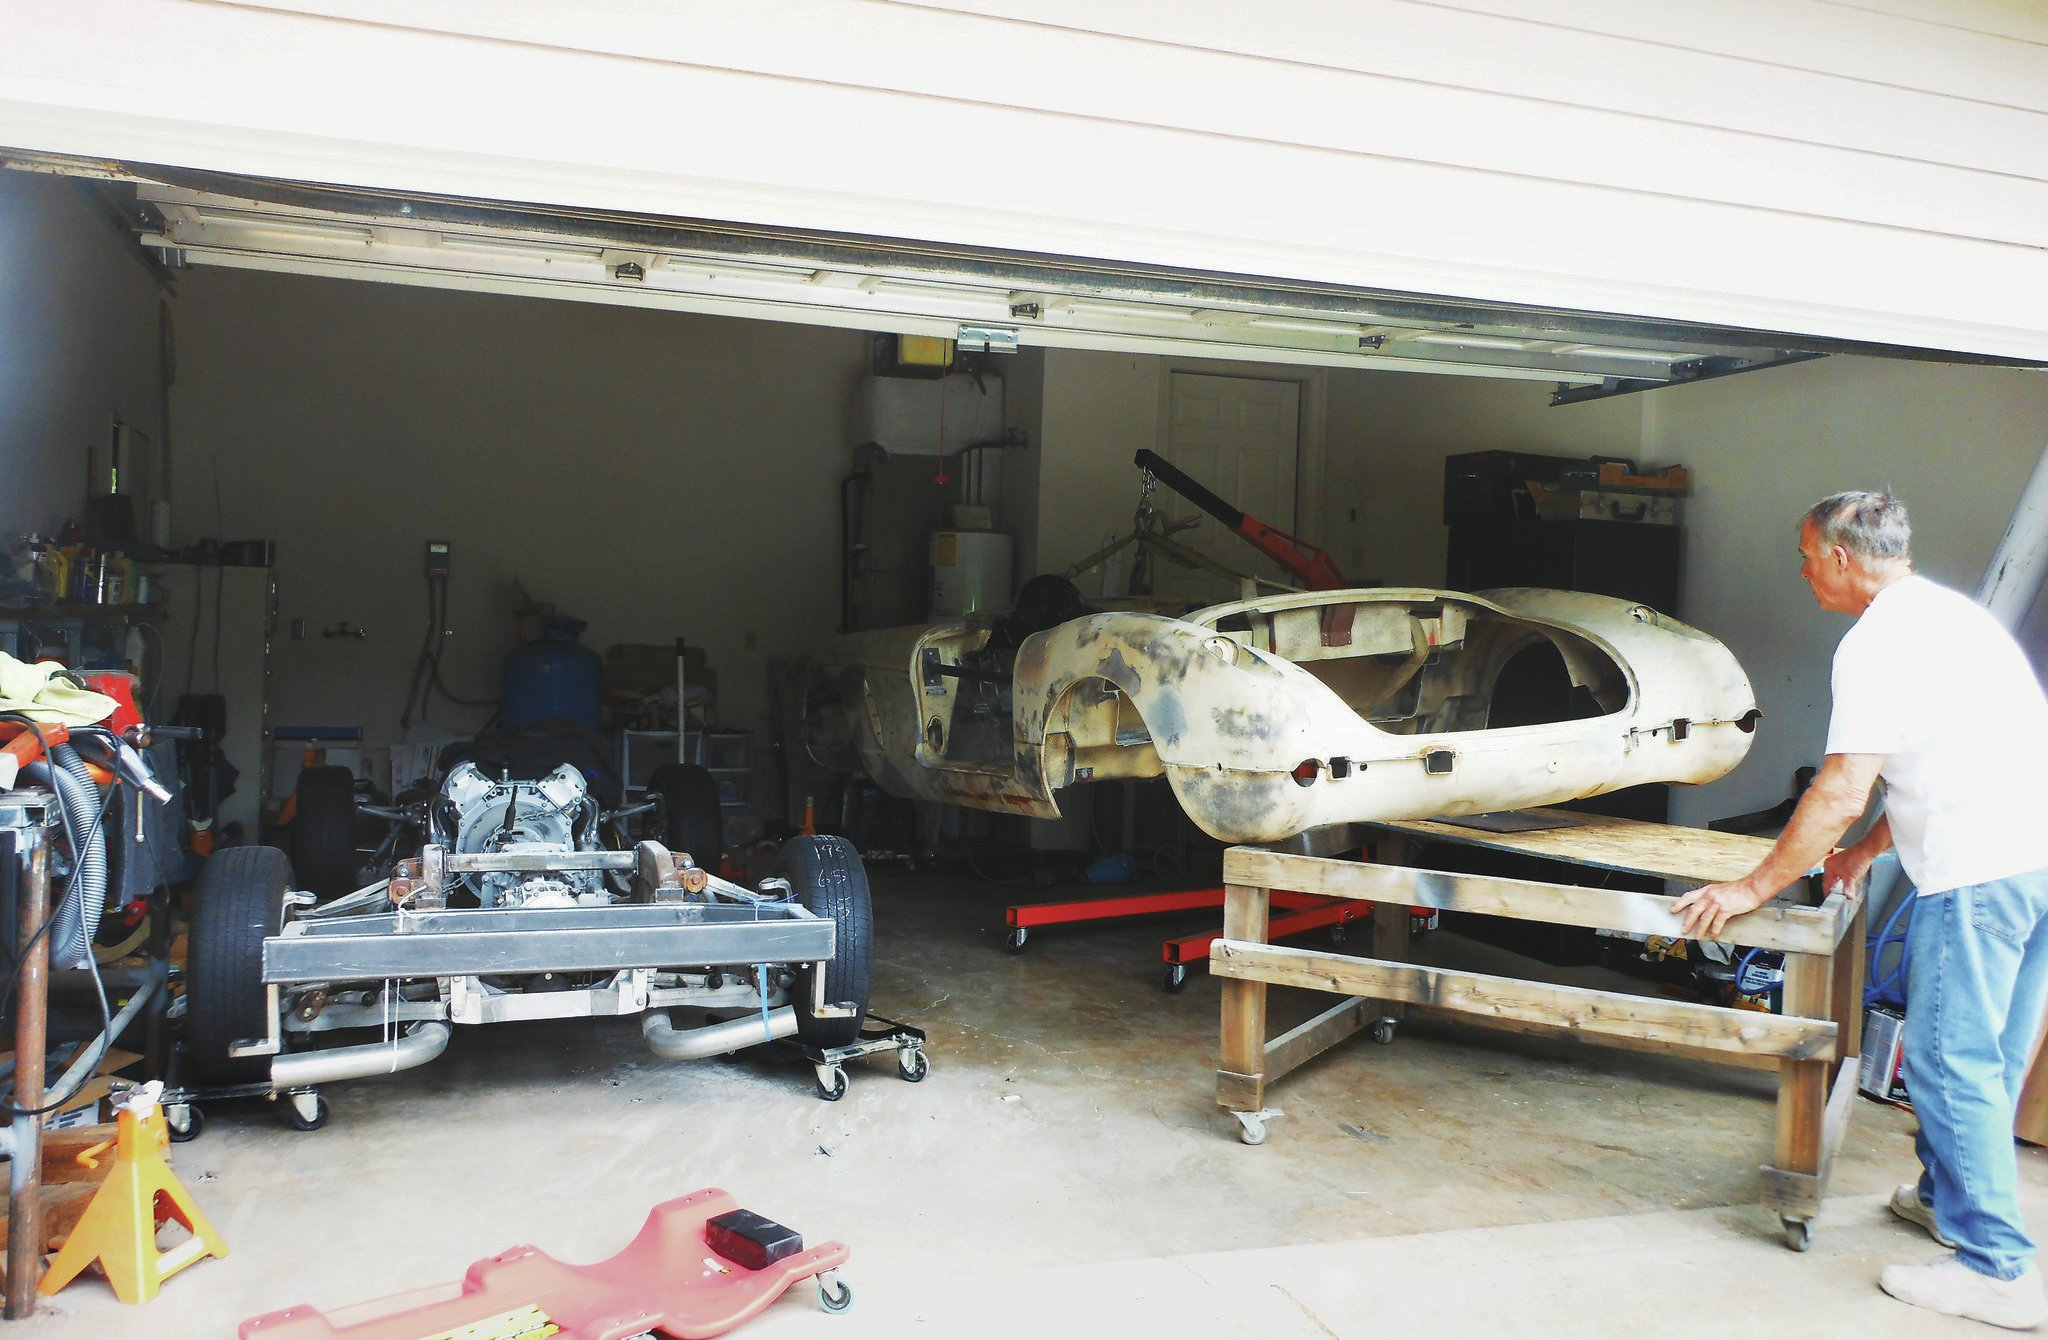 With the body shell and chassis separated, a better assessment can be made of what the previous owner completed and where Paul needs to continue the building process.